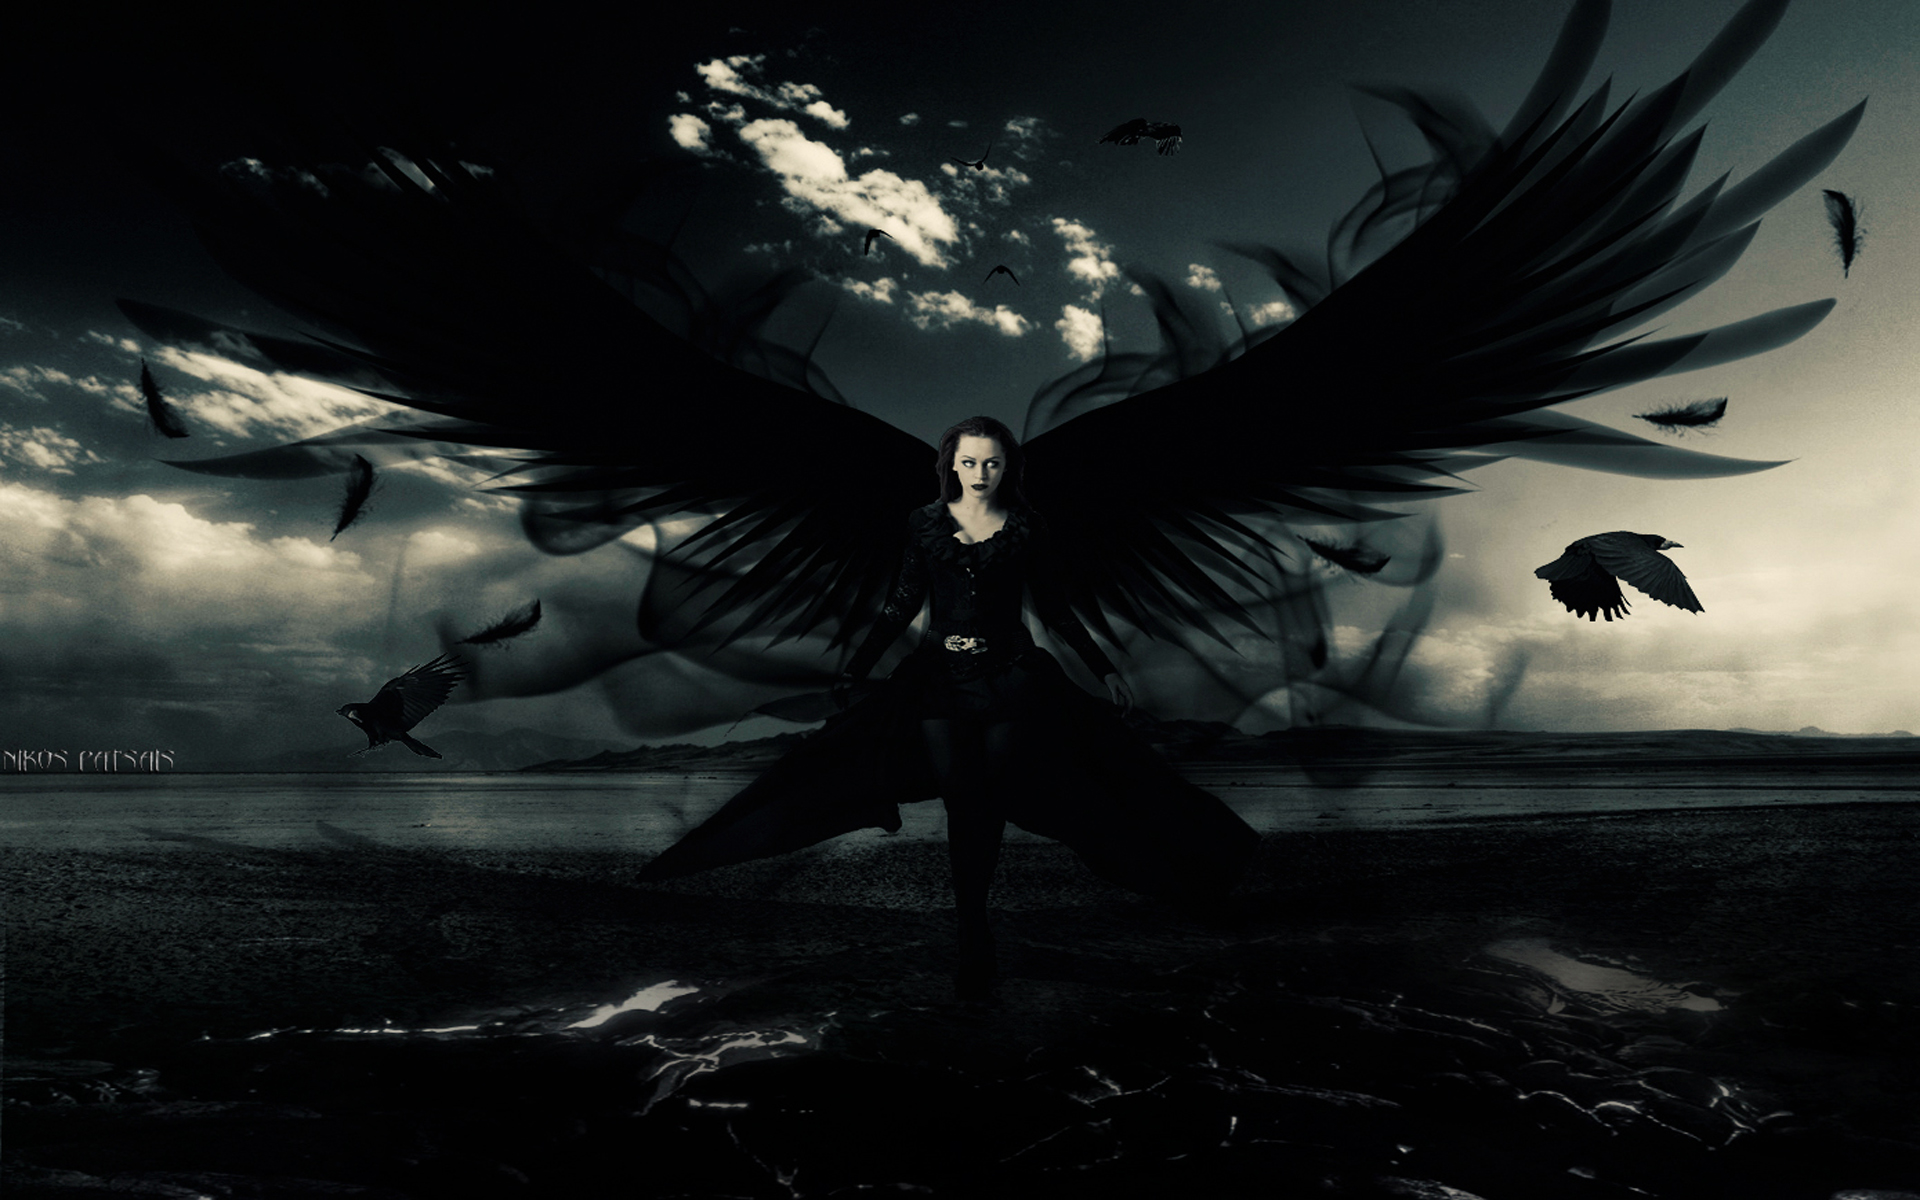 Dark angel wallpapers | Dark angel stock photos